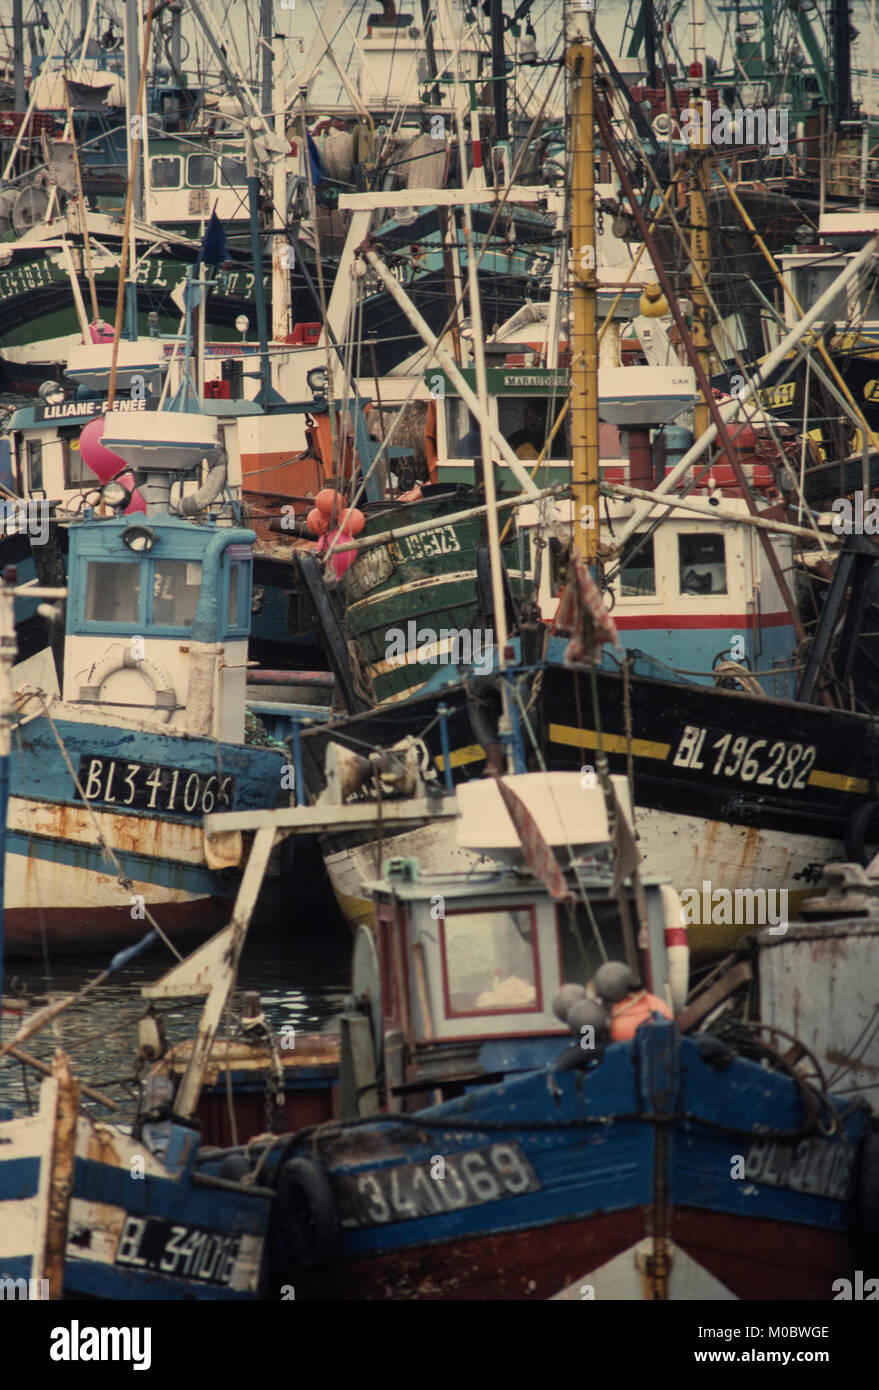 Boulogne Harbour fishing fleet, Boulogne,Pas de Calais, France. 1990 - Stock Image